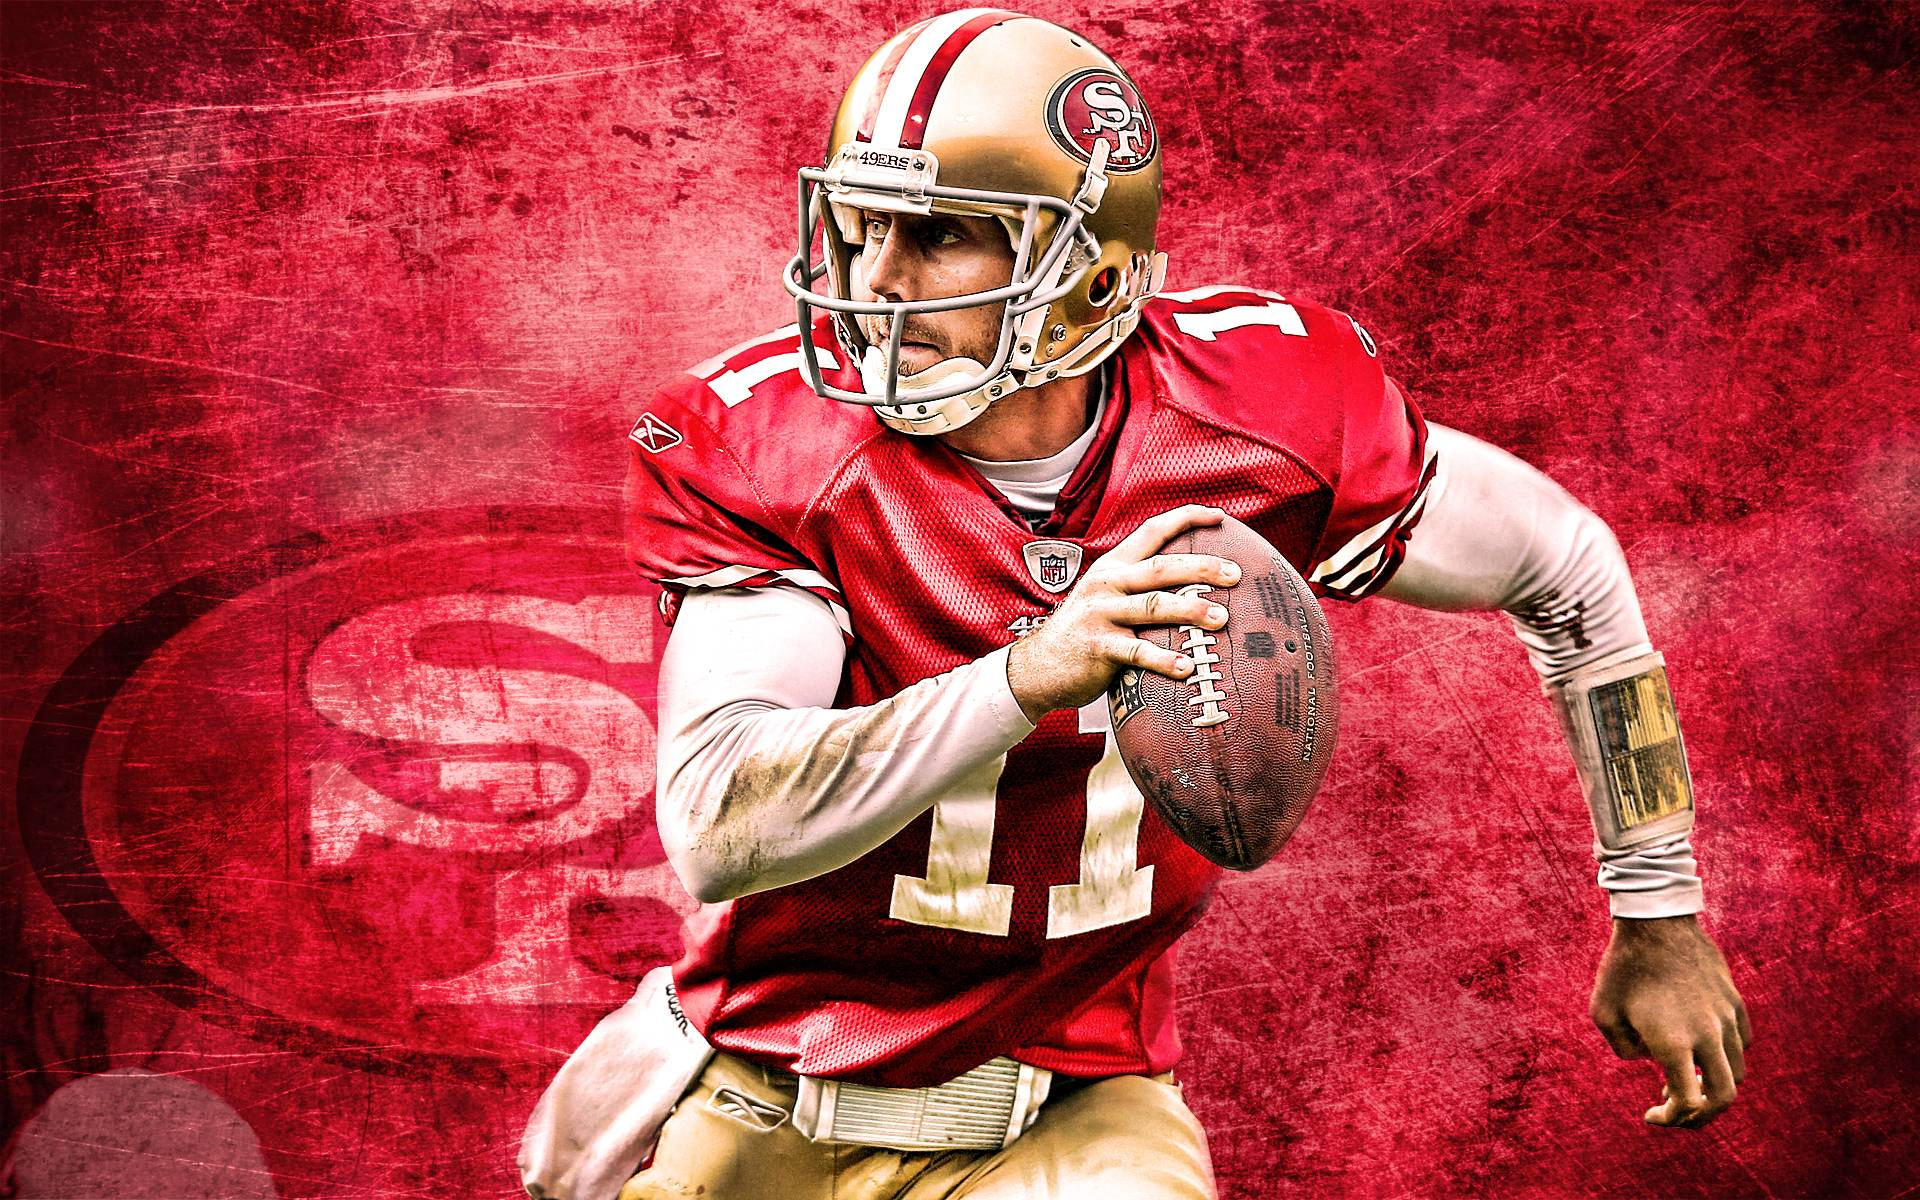 49ers HD Wallpapers Hd Wallpapers 1920x1200